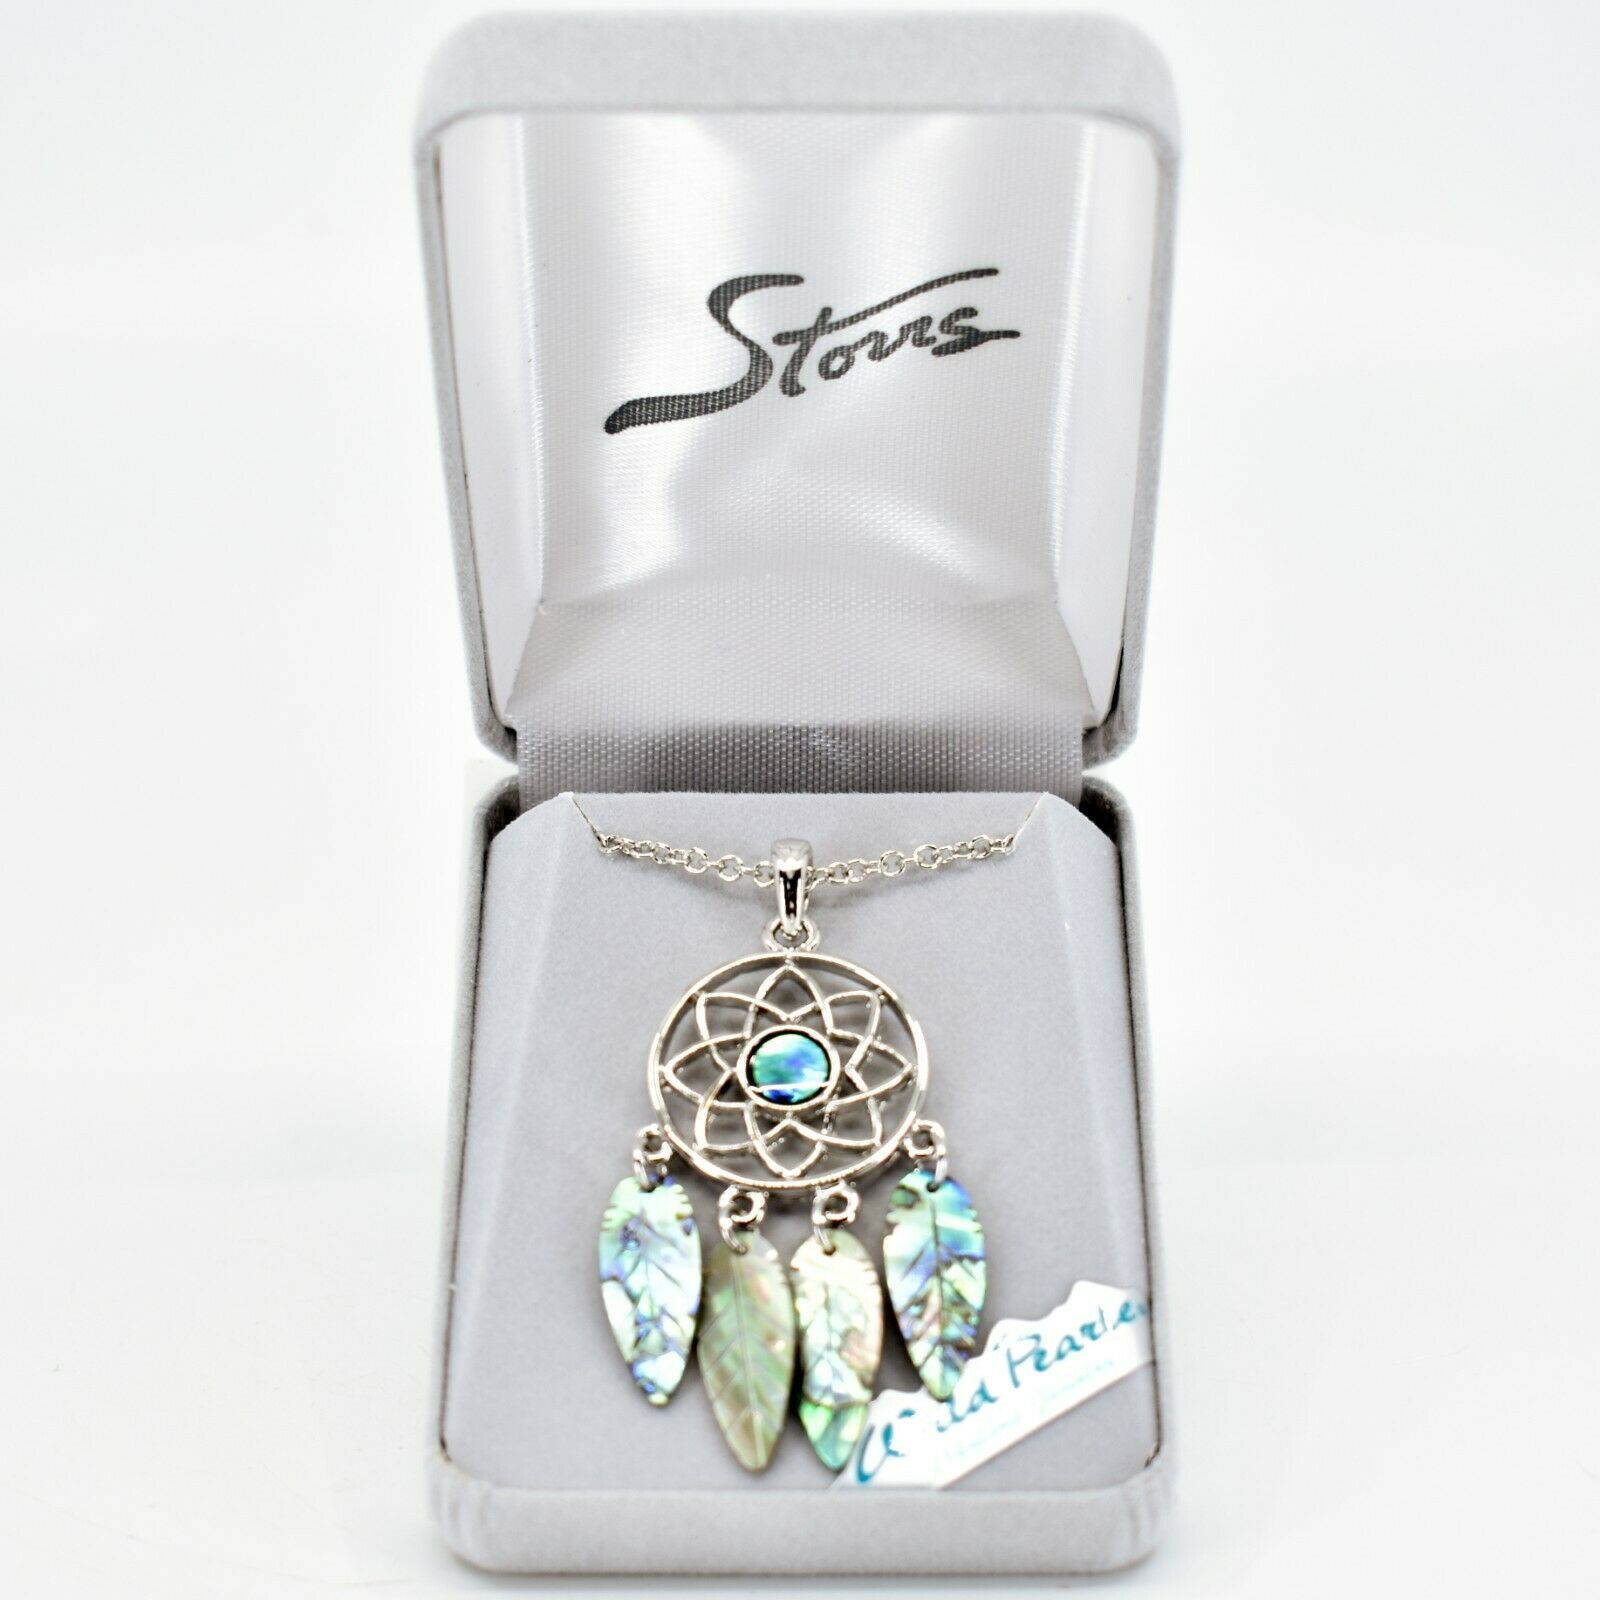 Storrs Wild Pearle Abalone Shell Feather Dreamcatcher Pendant & Necklace